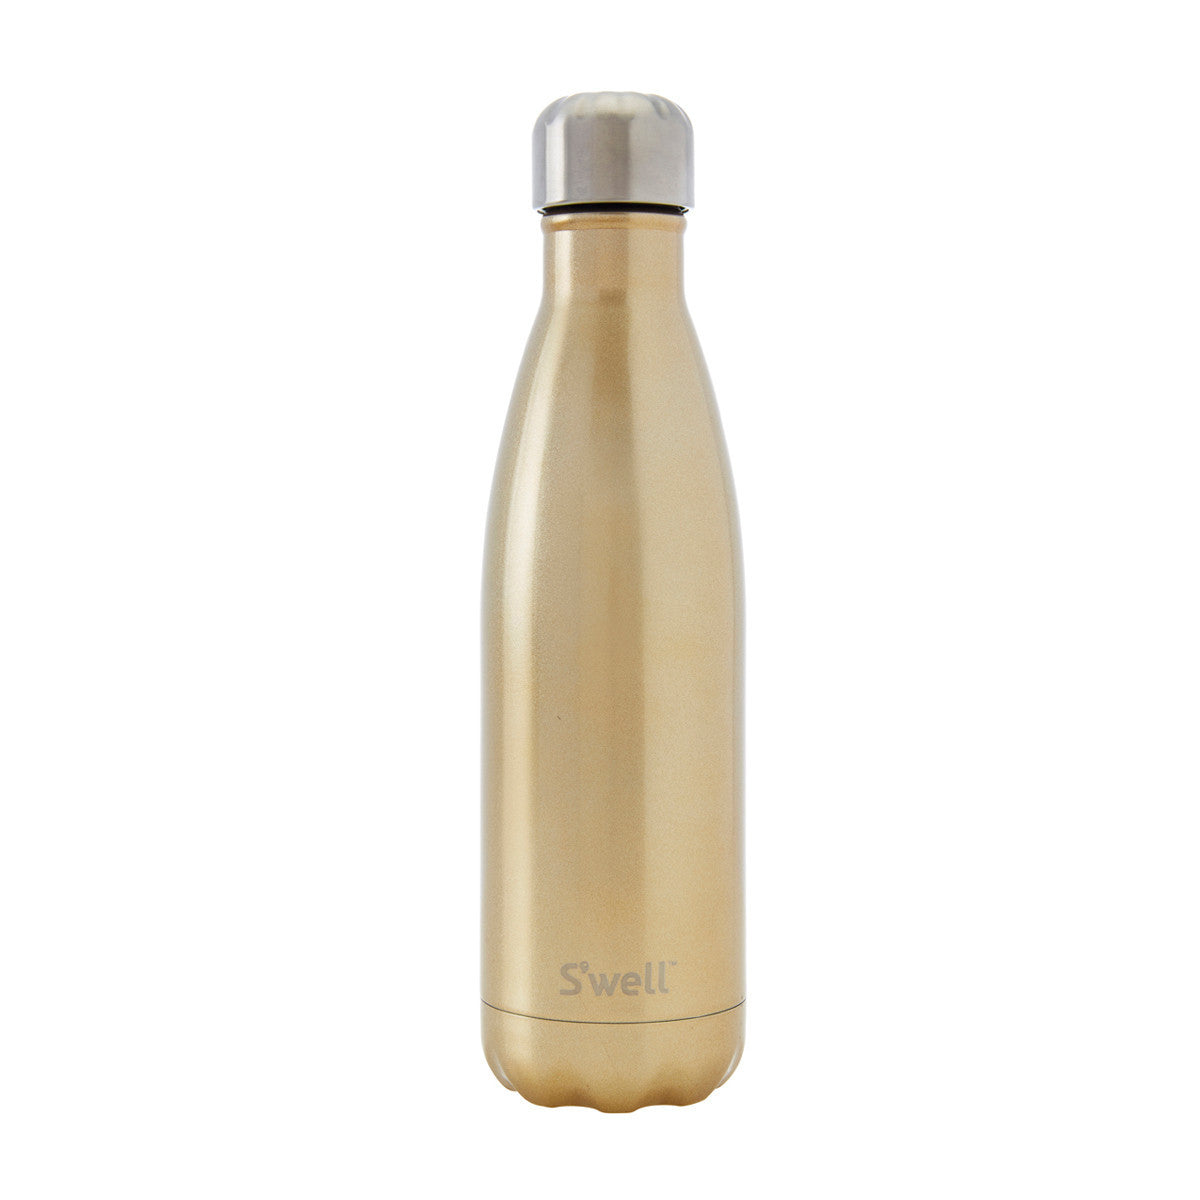 S'well Insulated Bottle - Sparkling Champagne